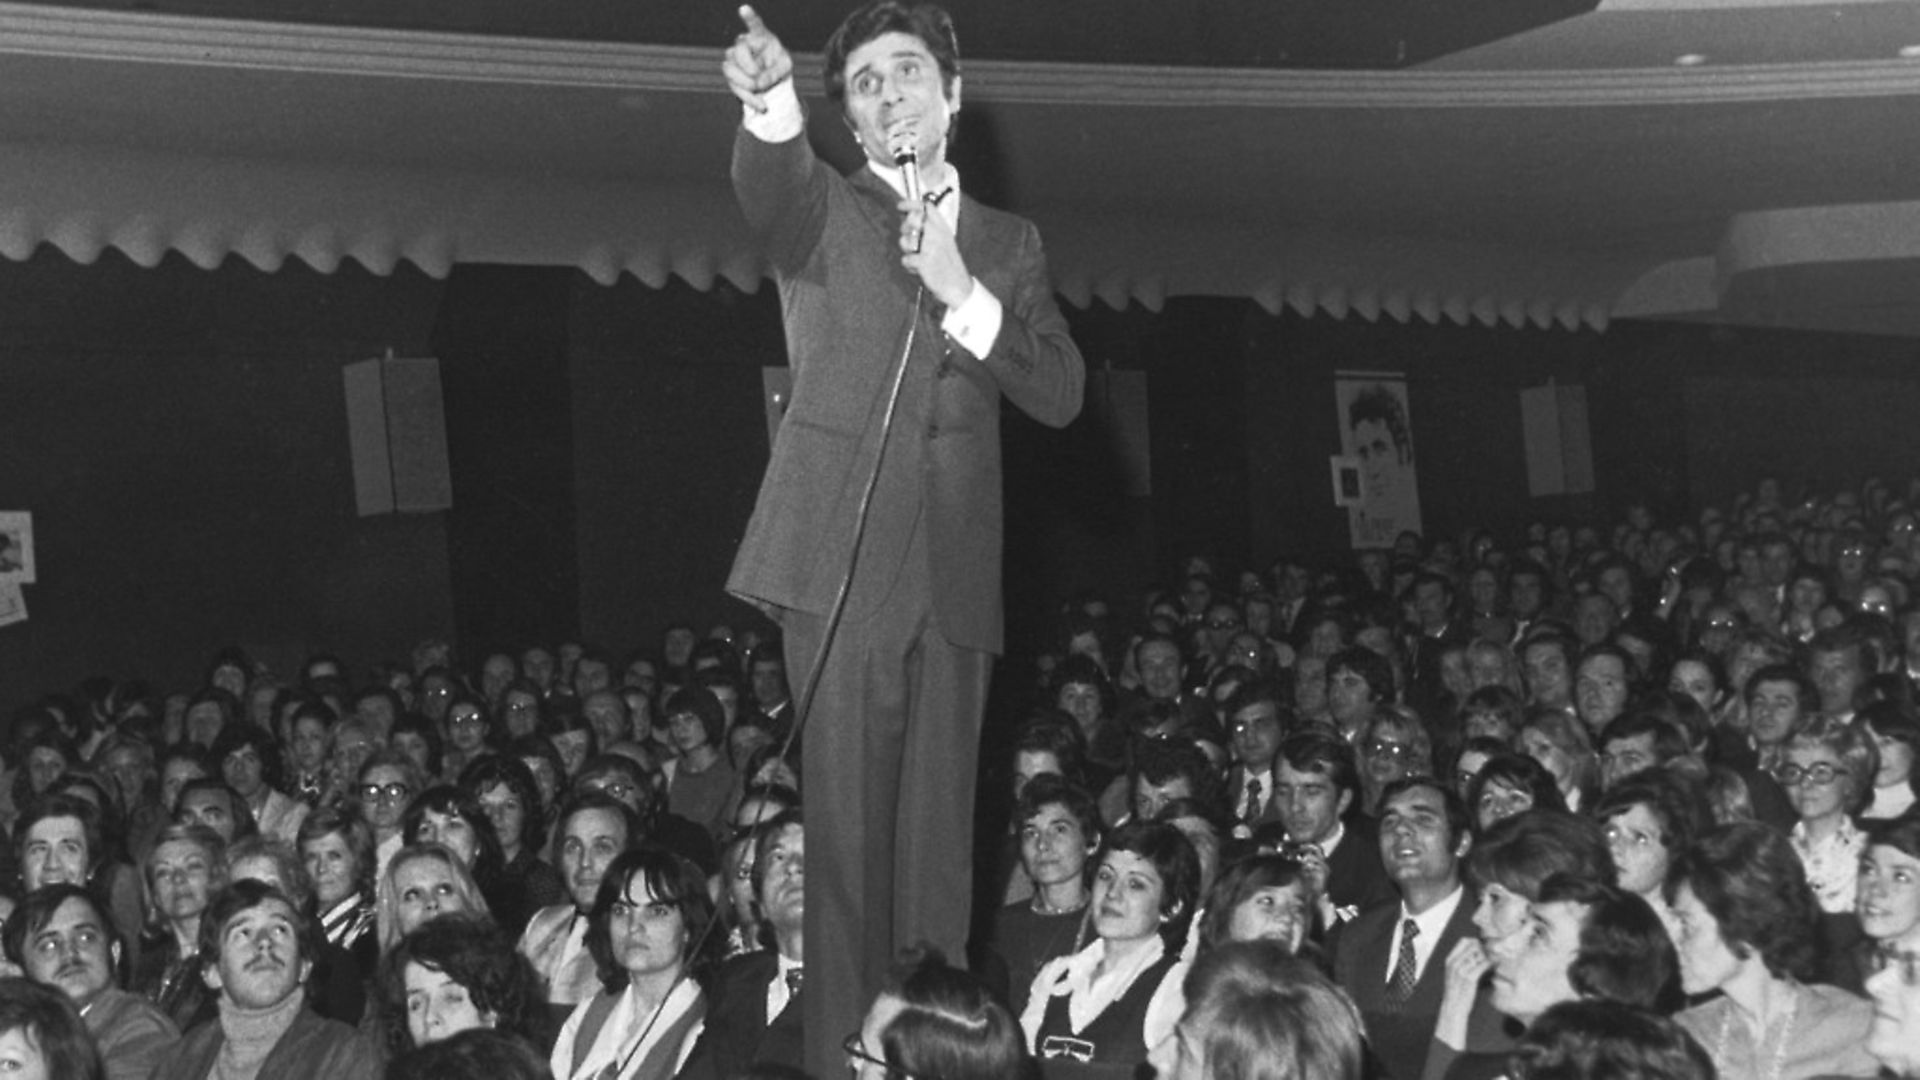 French singer and songwriter Gilbert Becaud (1927 - 2001) among the audience at the Olympia Theatre, Paris, 20th March 1973, during a concert to celebrate his twenty-year career. (Photo by Keystone/Hulton Archive/Getty Images) - Credit: Getty Images